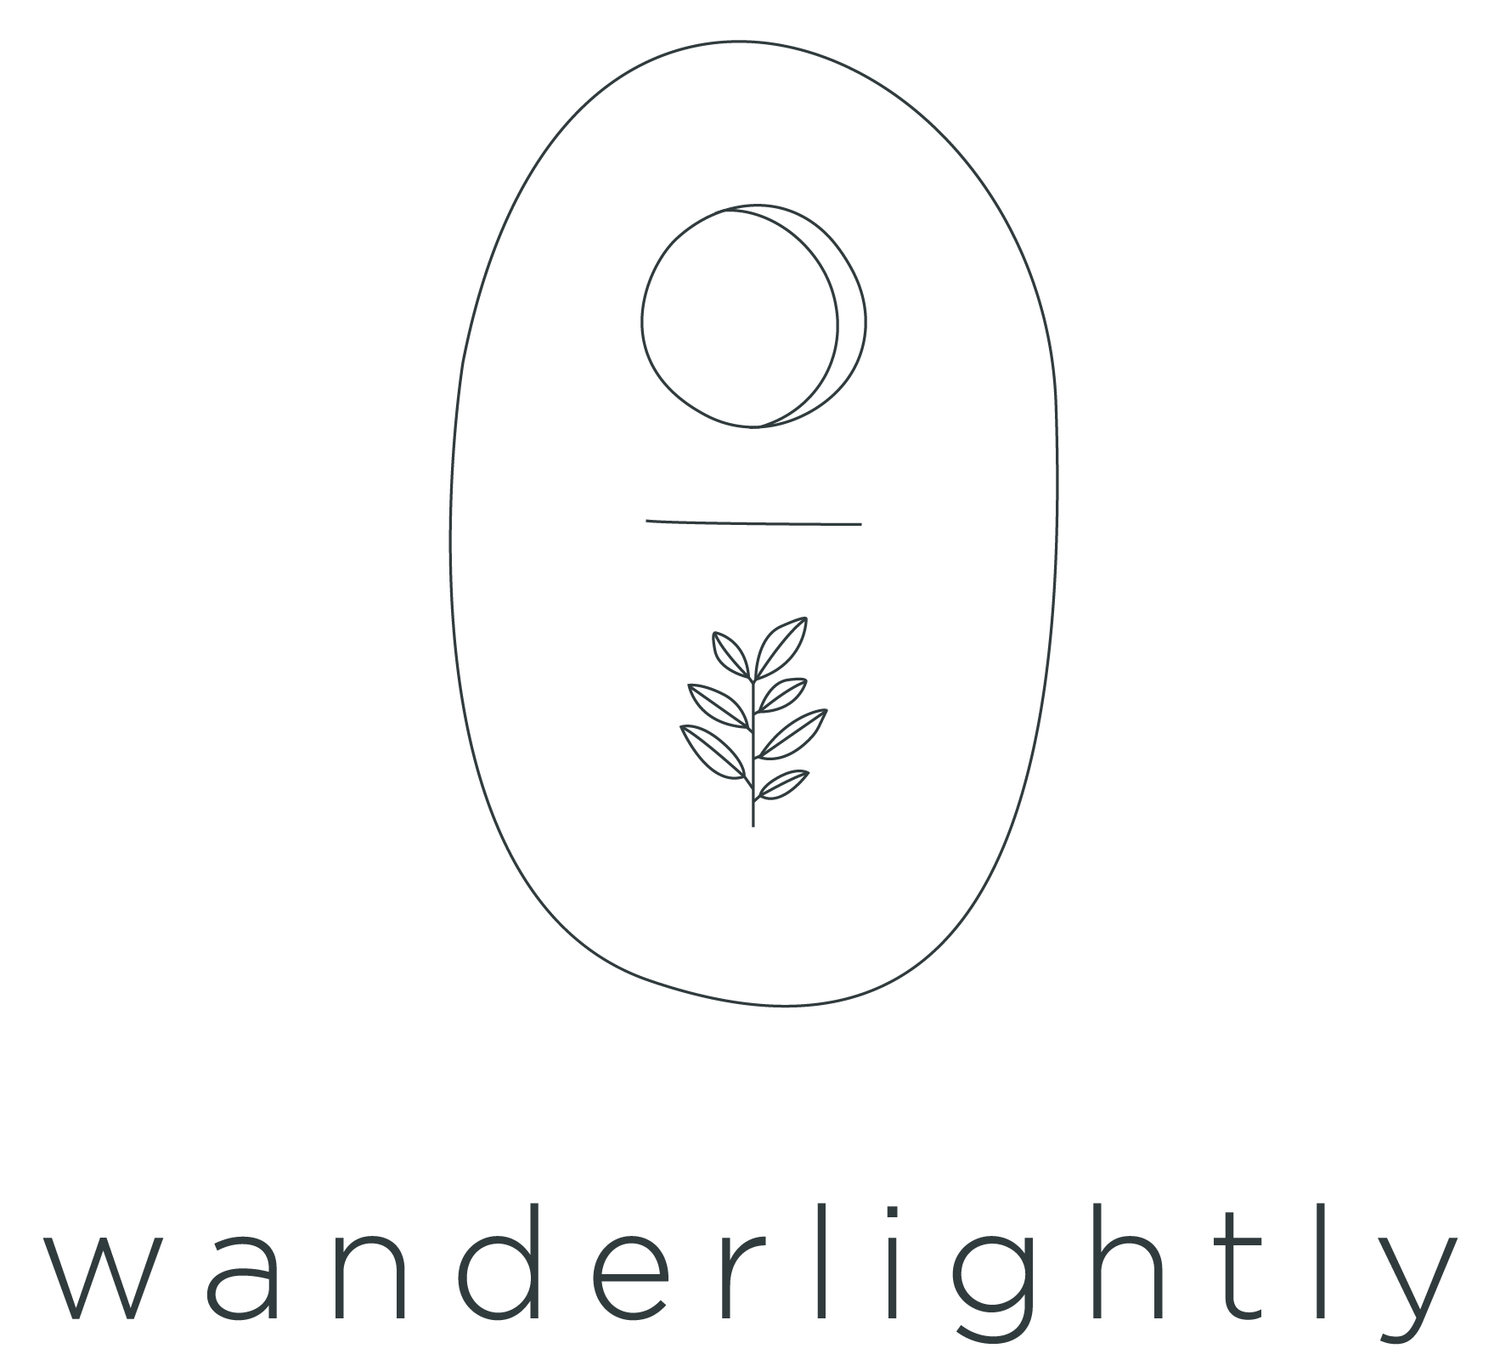 wanderlightly